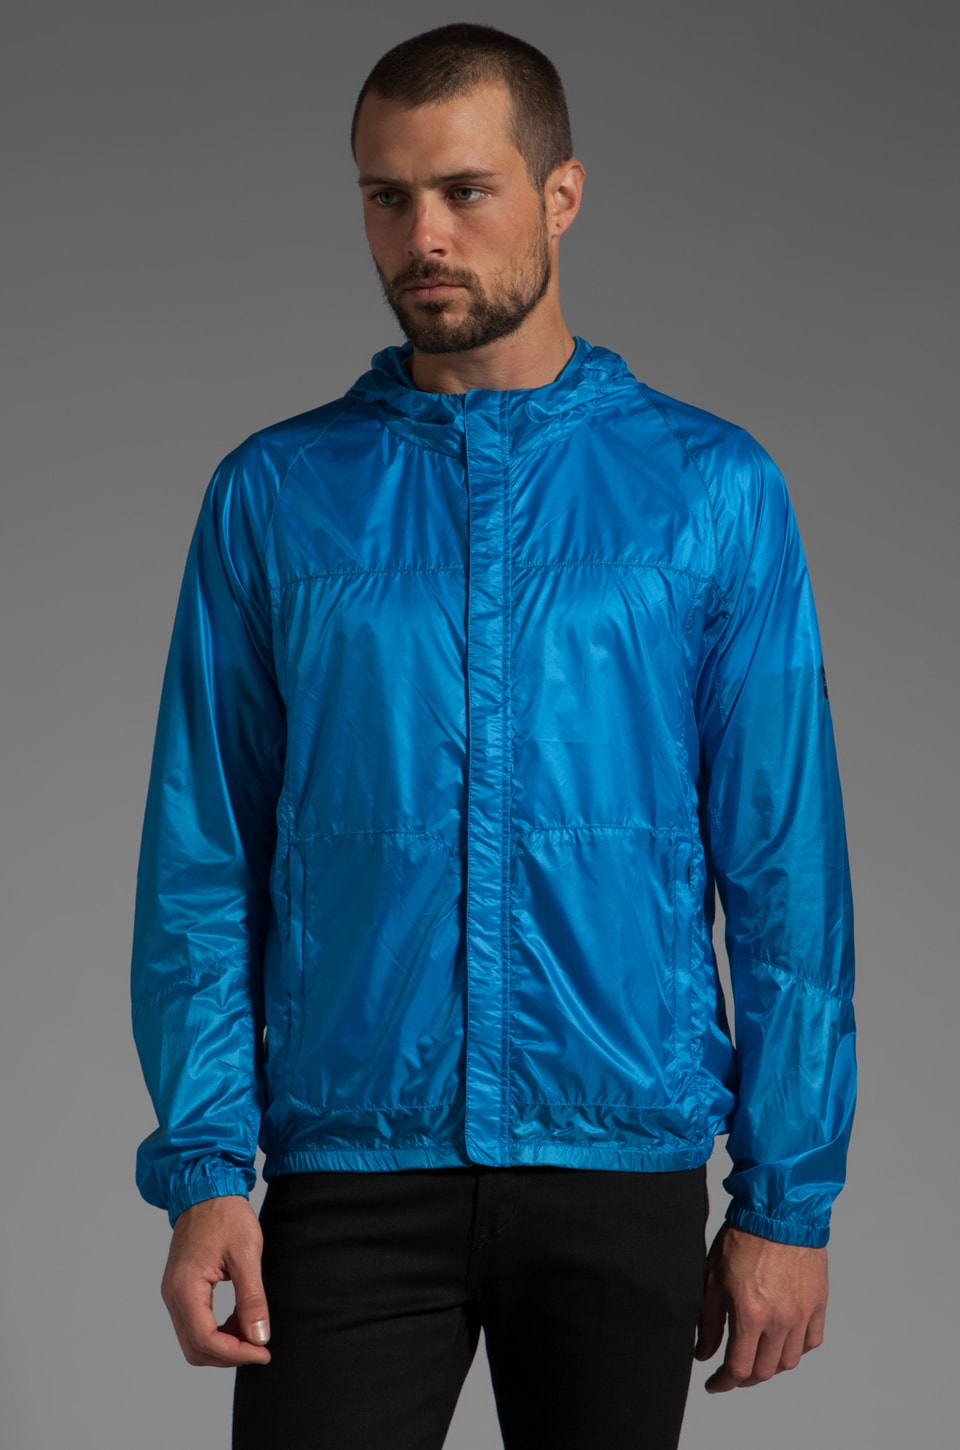 ISAORA Pertex Quantum Ultralight Packable Rain Shell en Bleu